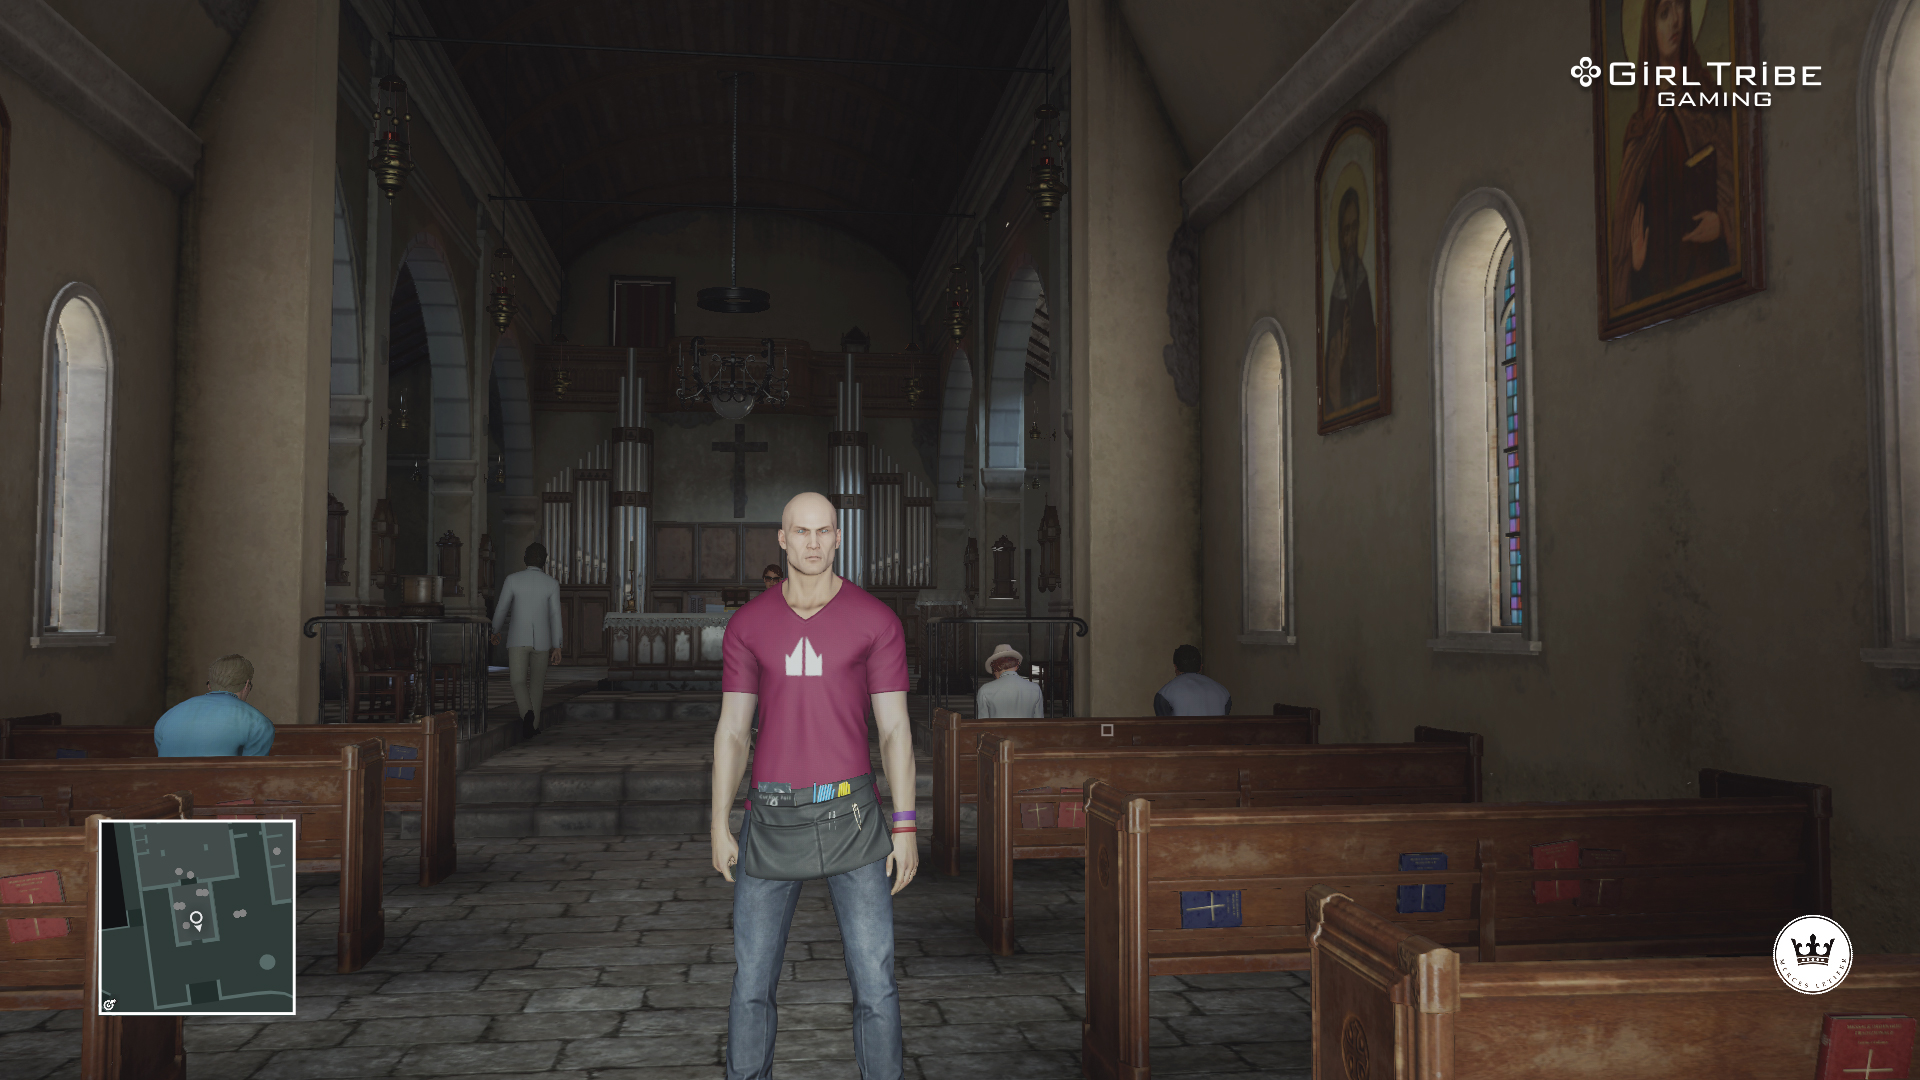 Hitman-ep-2-Screenshot-2-wb.jpg